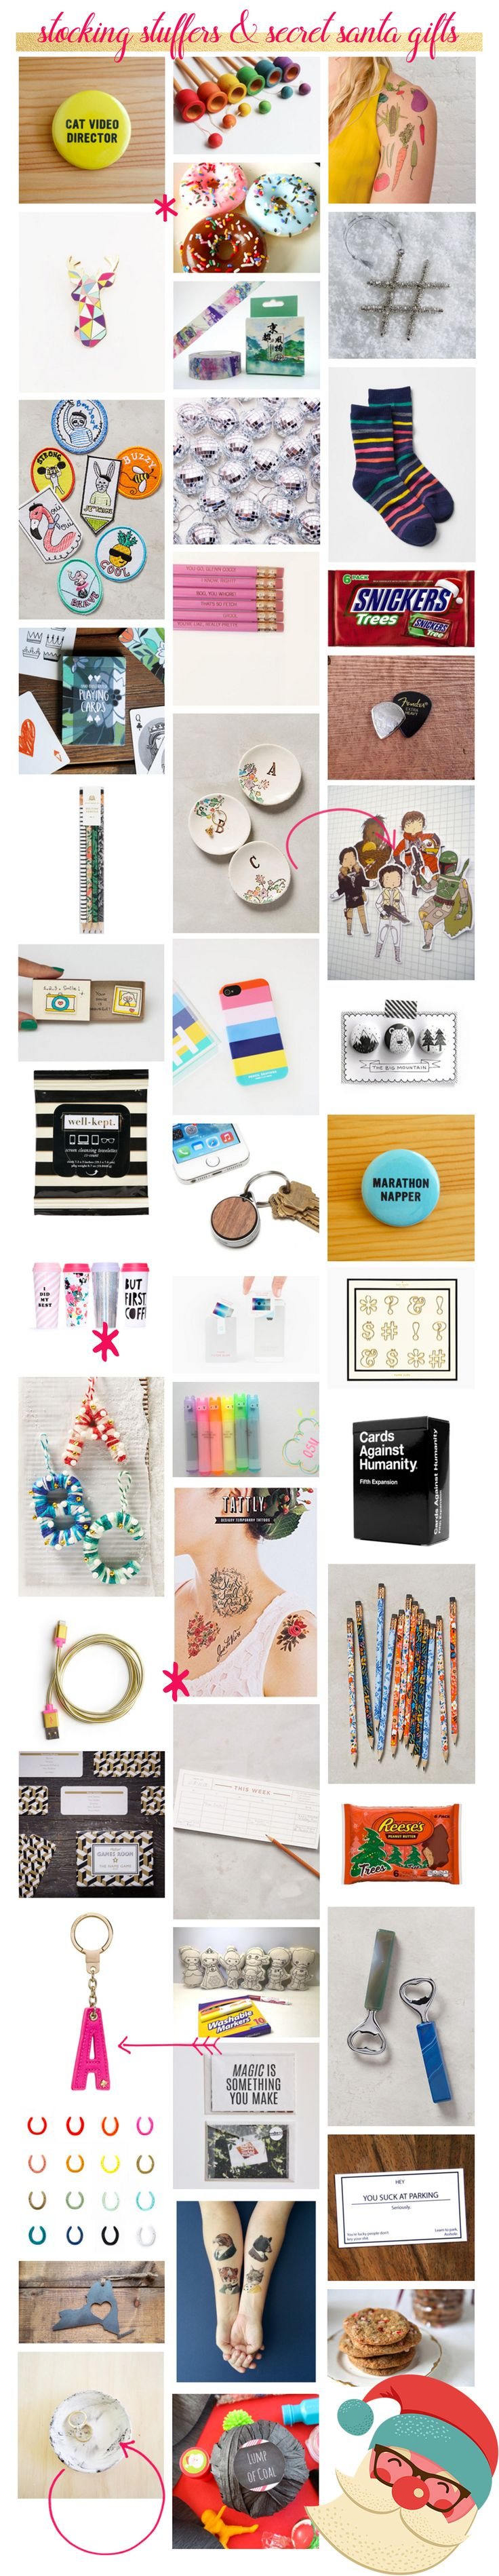 Cool Stocking Stuffers 192 best images about gift guide: stocking stuffers + secret